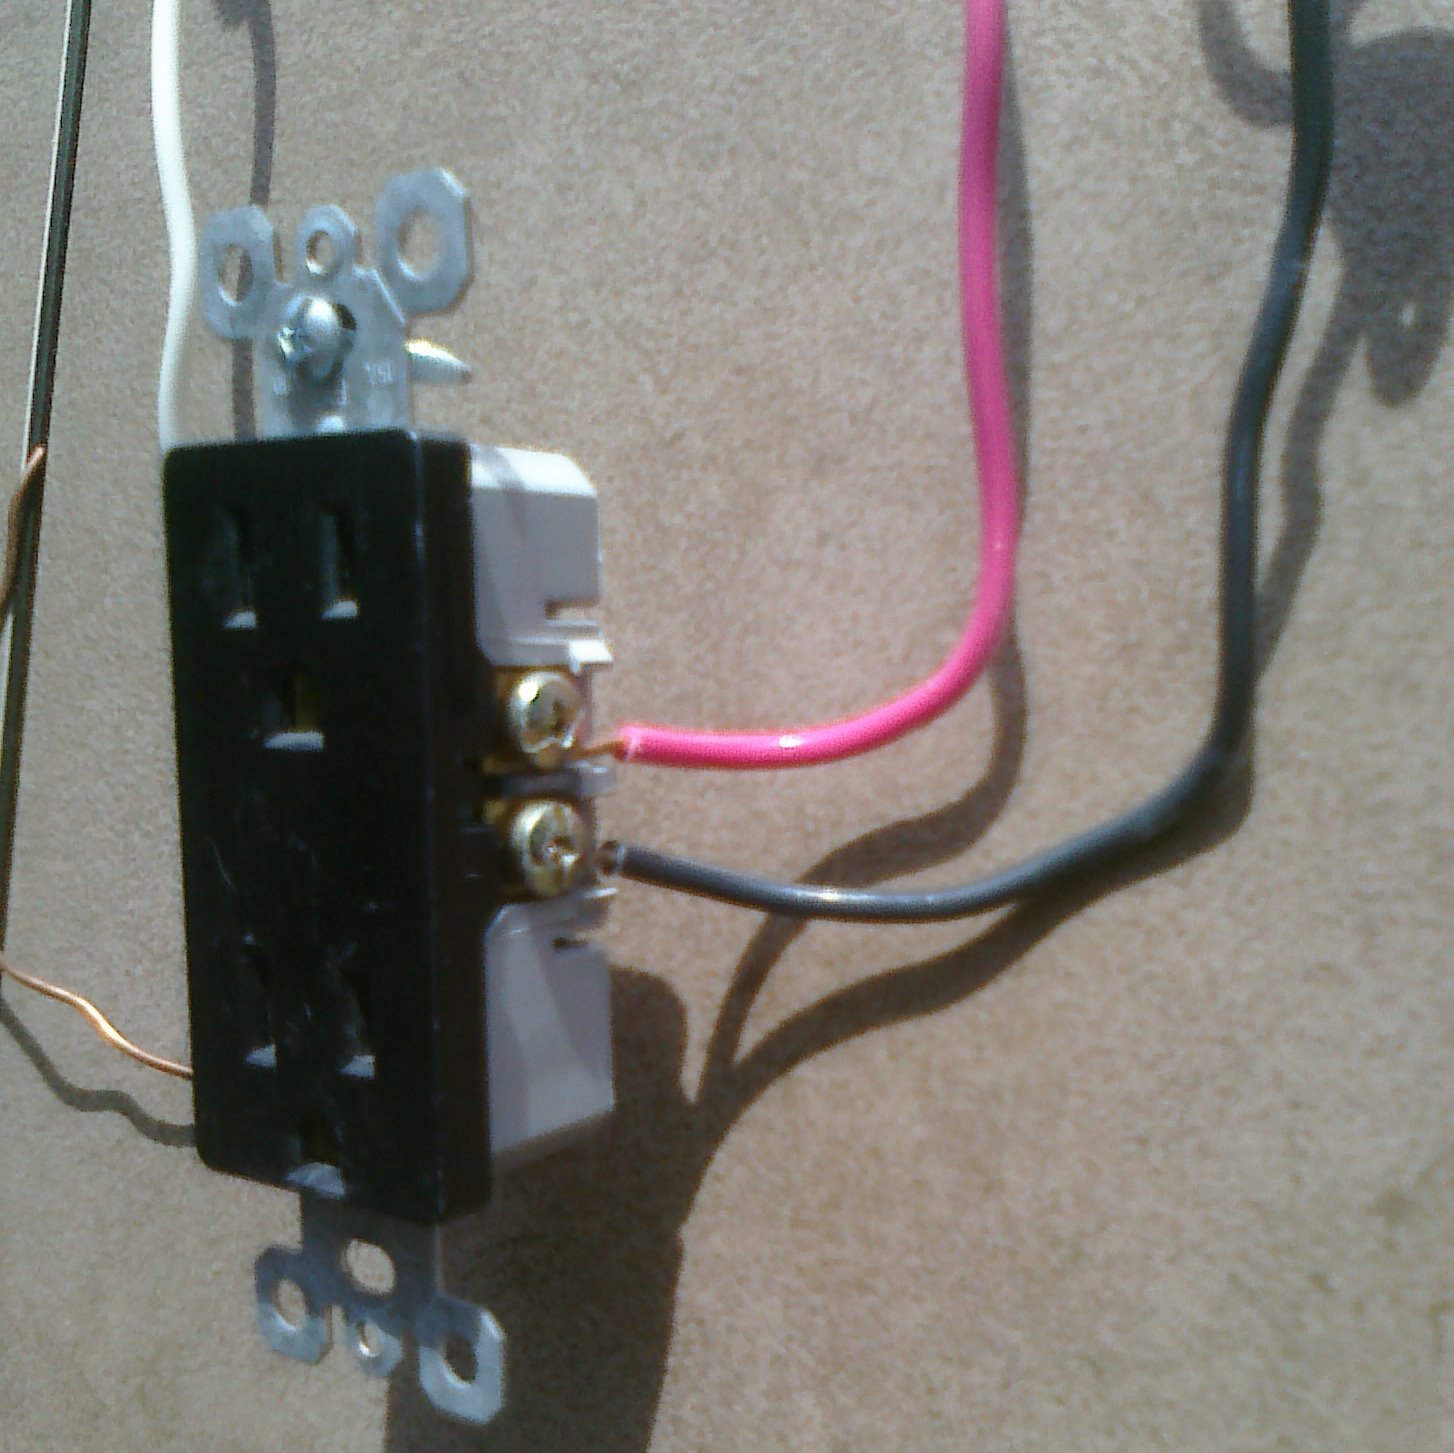 hight resolution of break tab wiring multiple outlets wiring diagram technic break tab wiring multiple outlets